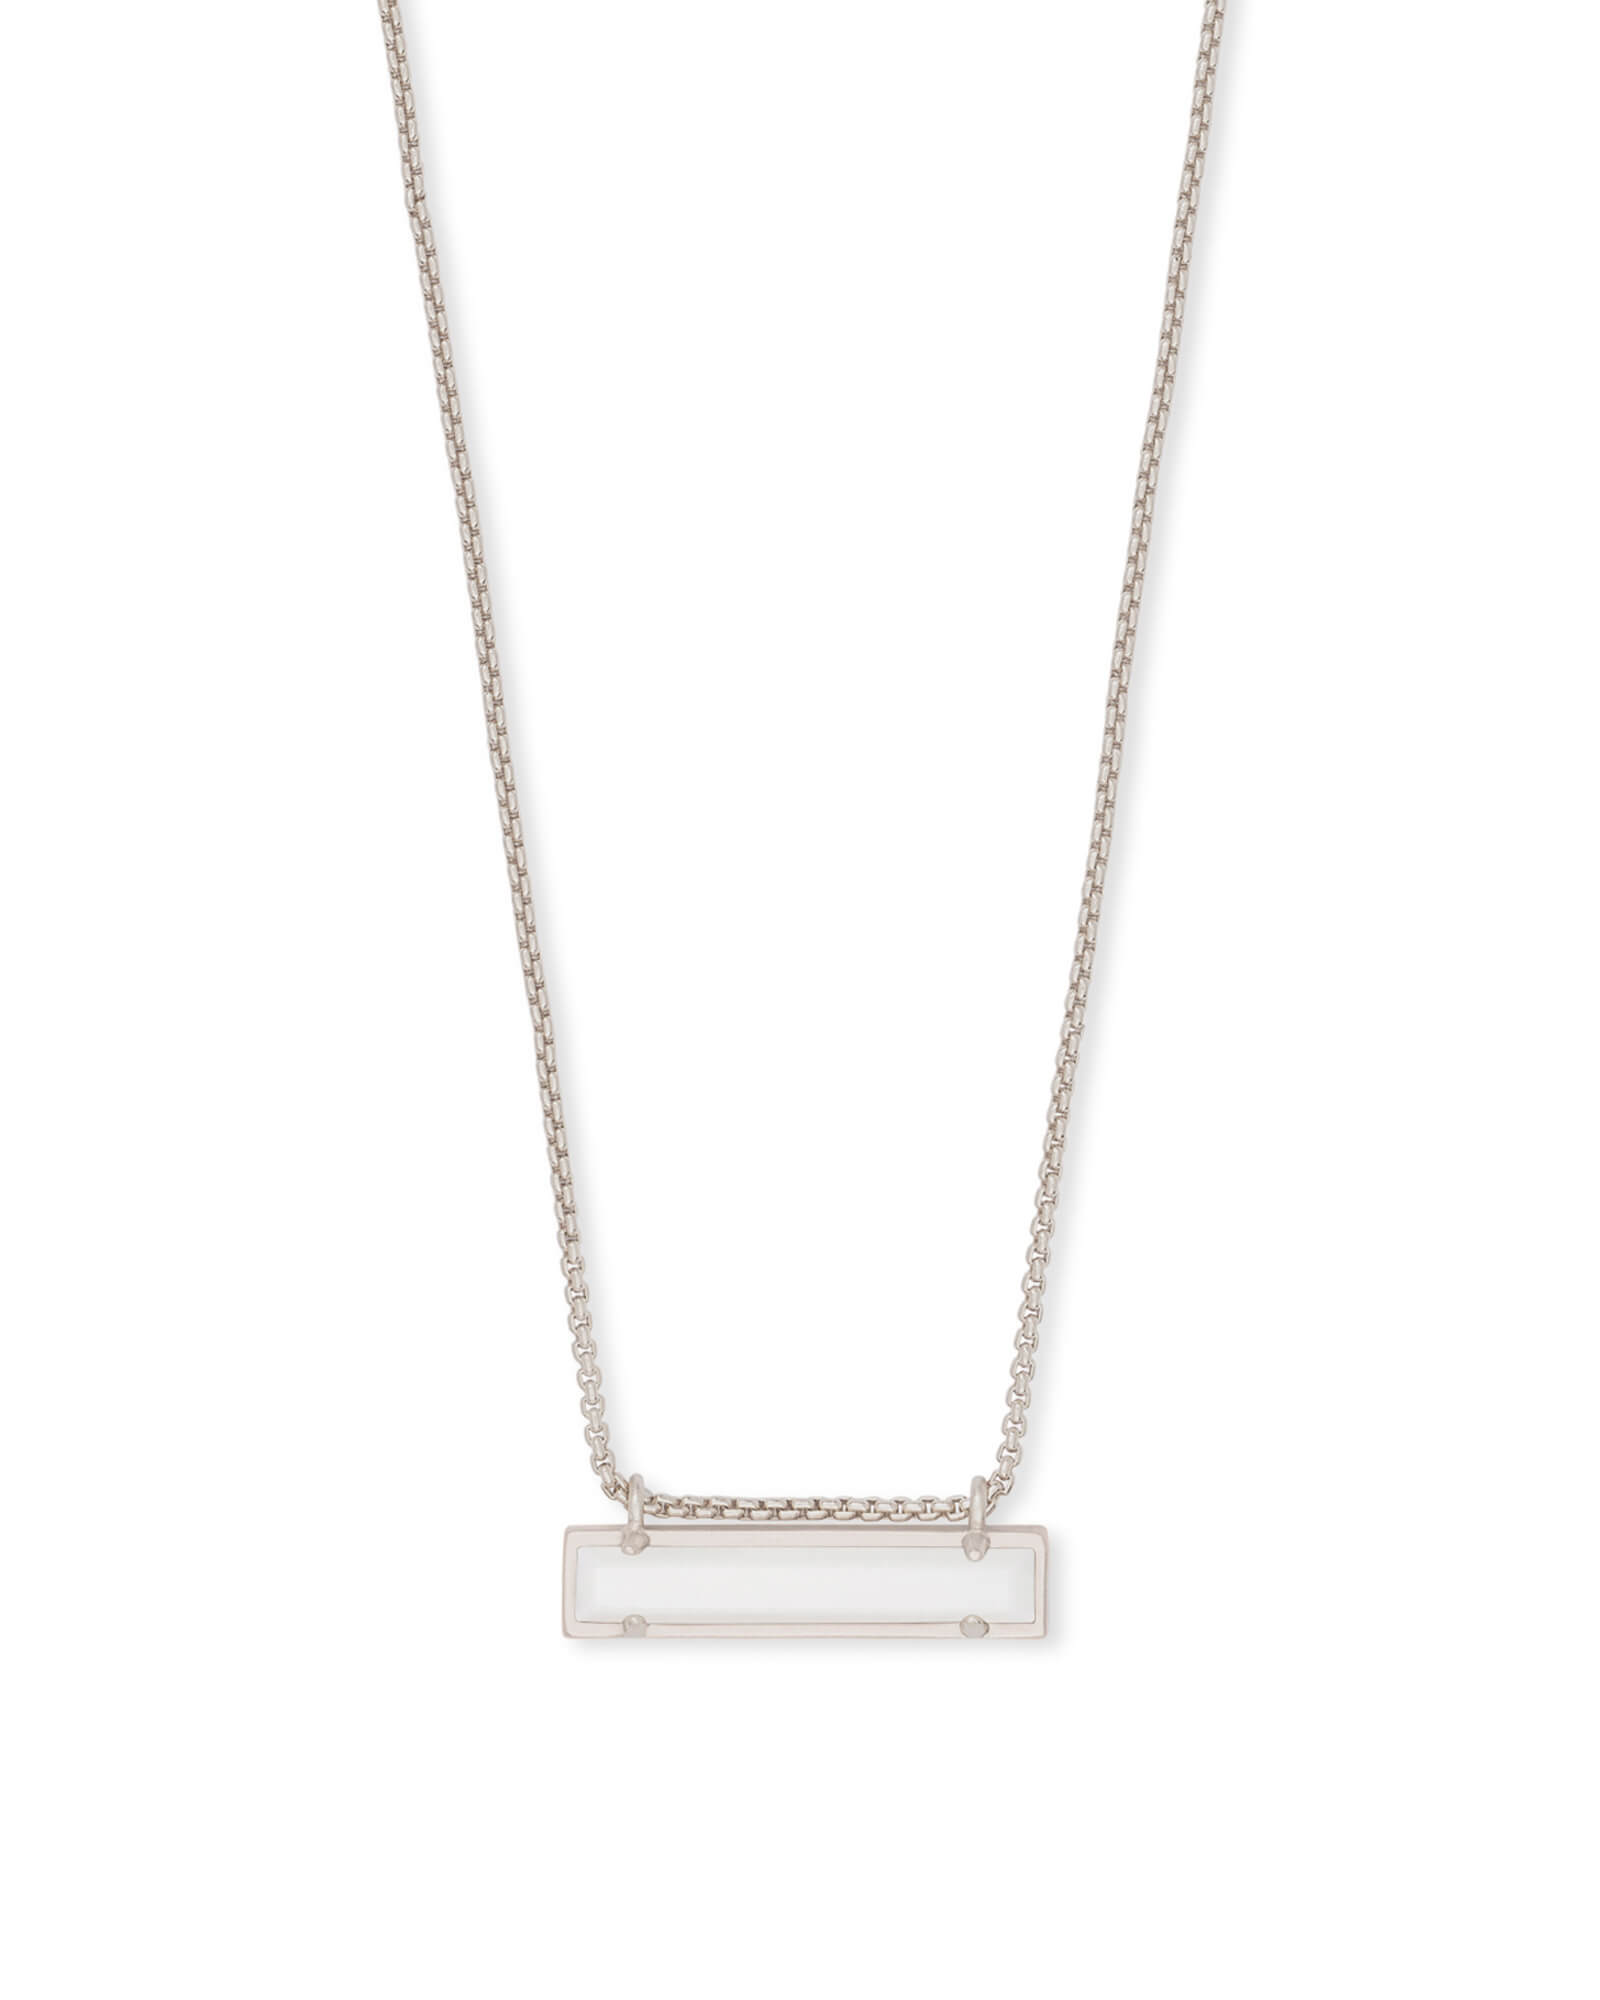 Leanor Silver Pendant Necklace in White Pearl